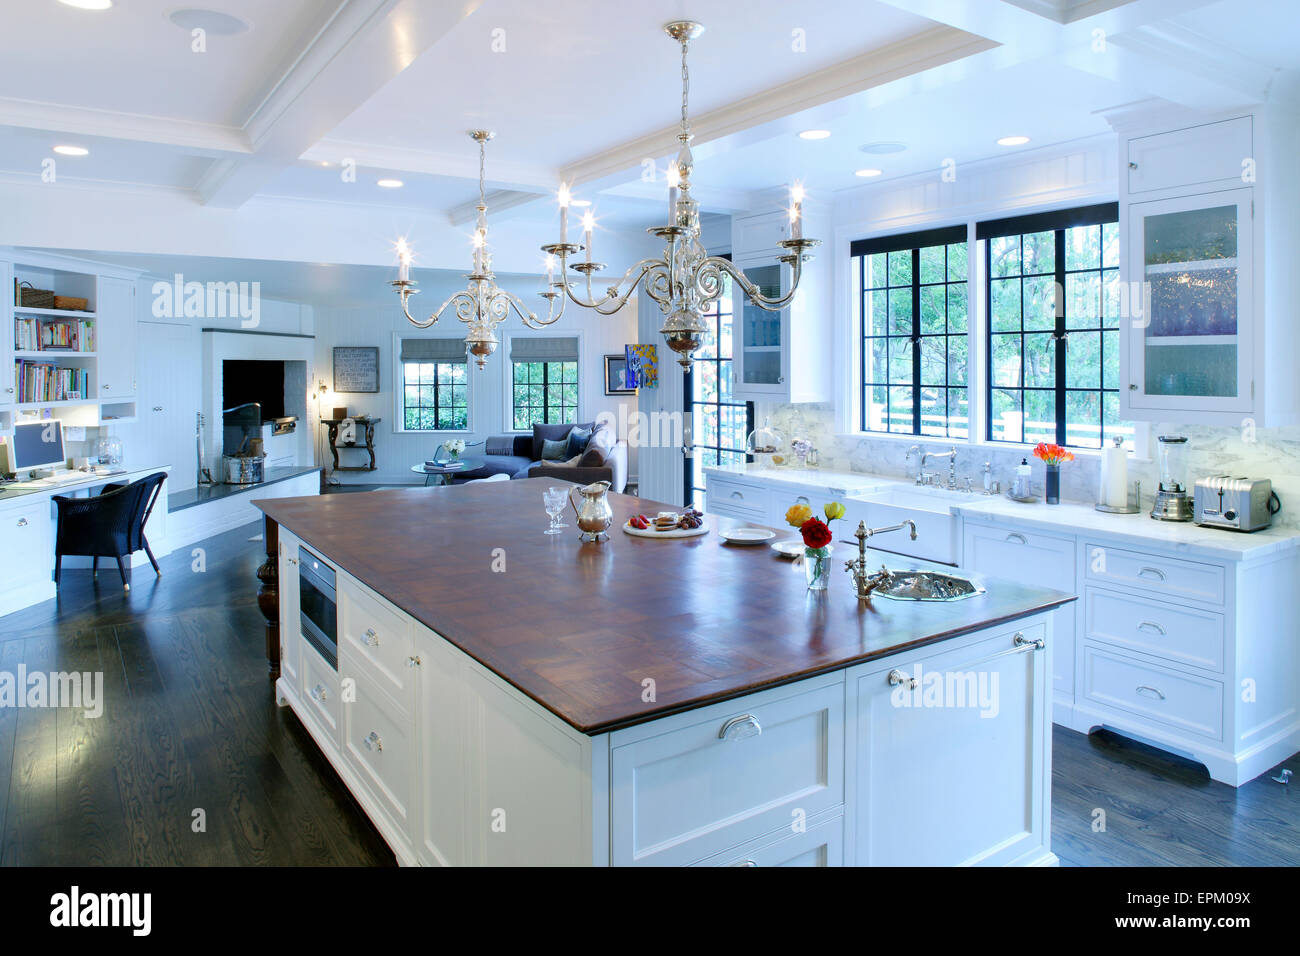 Stock Photo   Wooden Topped Island Unit In Large Open Plan Kitchen/living  Room, Maroney Lane Residence, USA Part 65